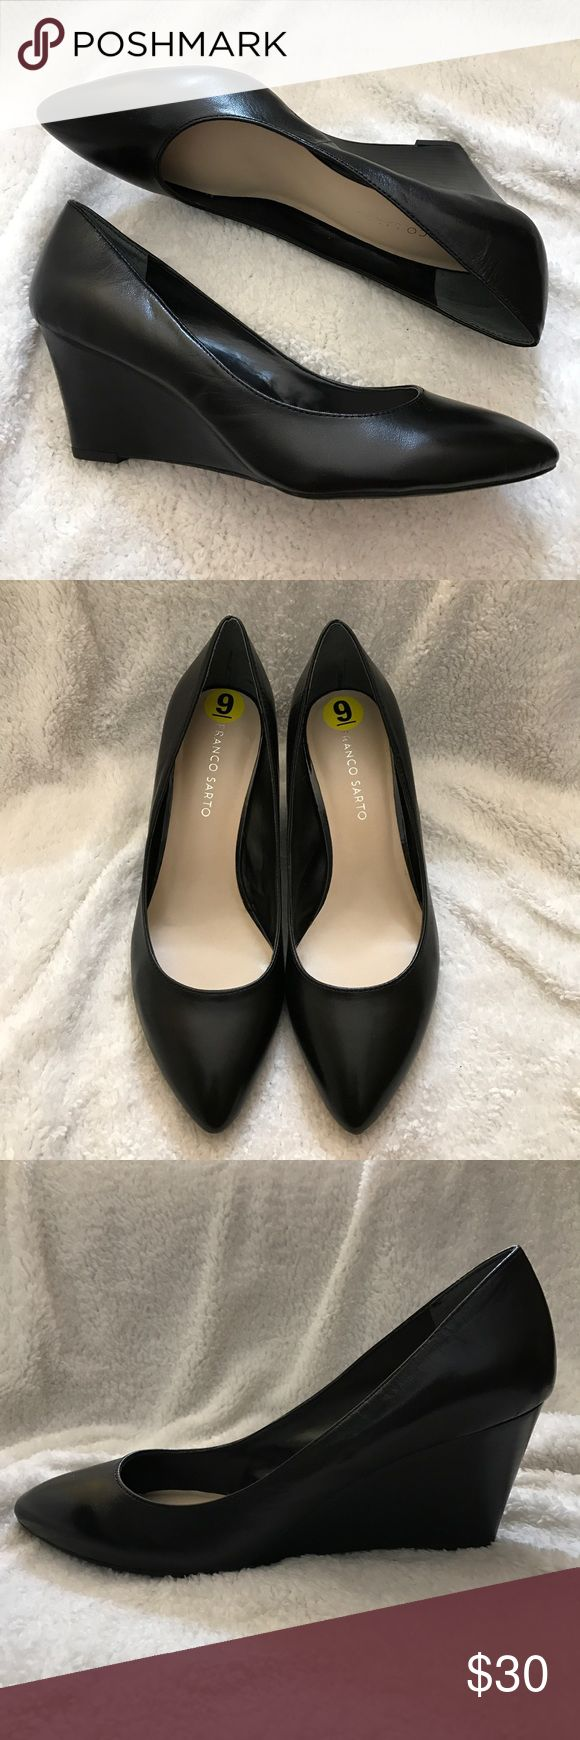 "Franco Sarto Women's PATIENCE Wedge Pumps 9M  Franco Sarto Women's PATIENCE Black leather Pointed Toe Wedge Pumps , Size 9M. Delightful pair of black leather pointed-toe pumps with stacked wedge heel measures 2.5"". The shoes are shaped for arch support and carry a cushioned insole. NWOT, never worn. Franco Sarto Shoes Wedges"